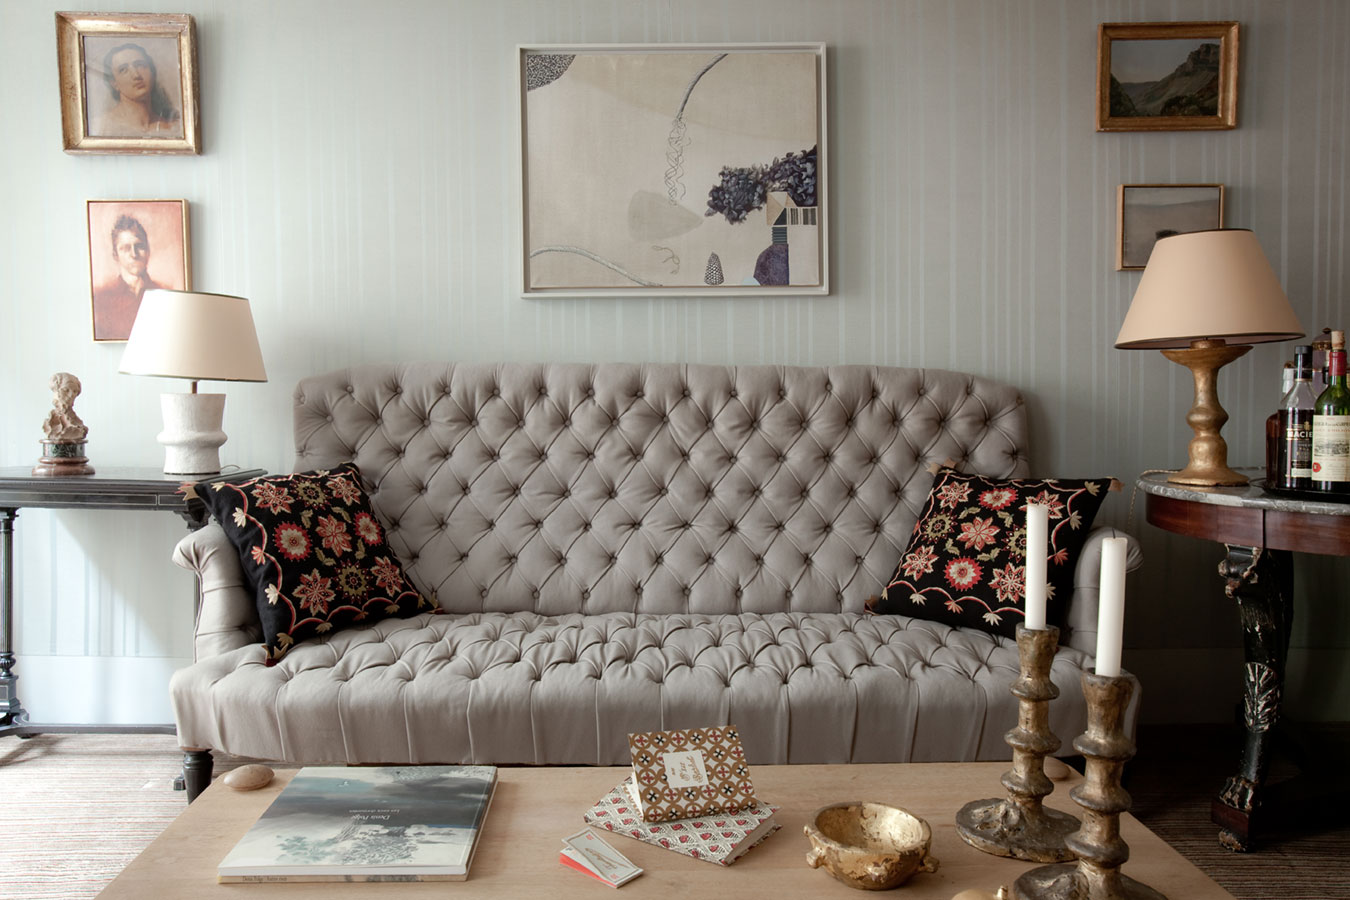 Chic Living Room Furniture Classic Style living room in french style in white Classic Style Furniture For Practical Chic Interiors Nice Broad Chic Couch With Printed Cushions In